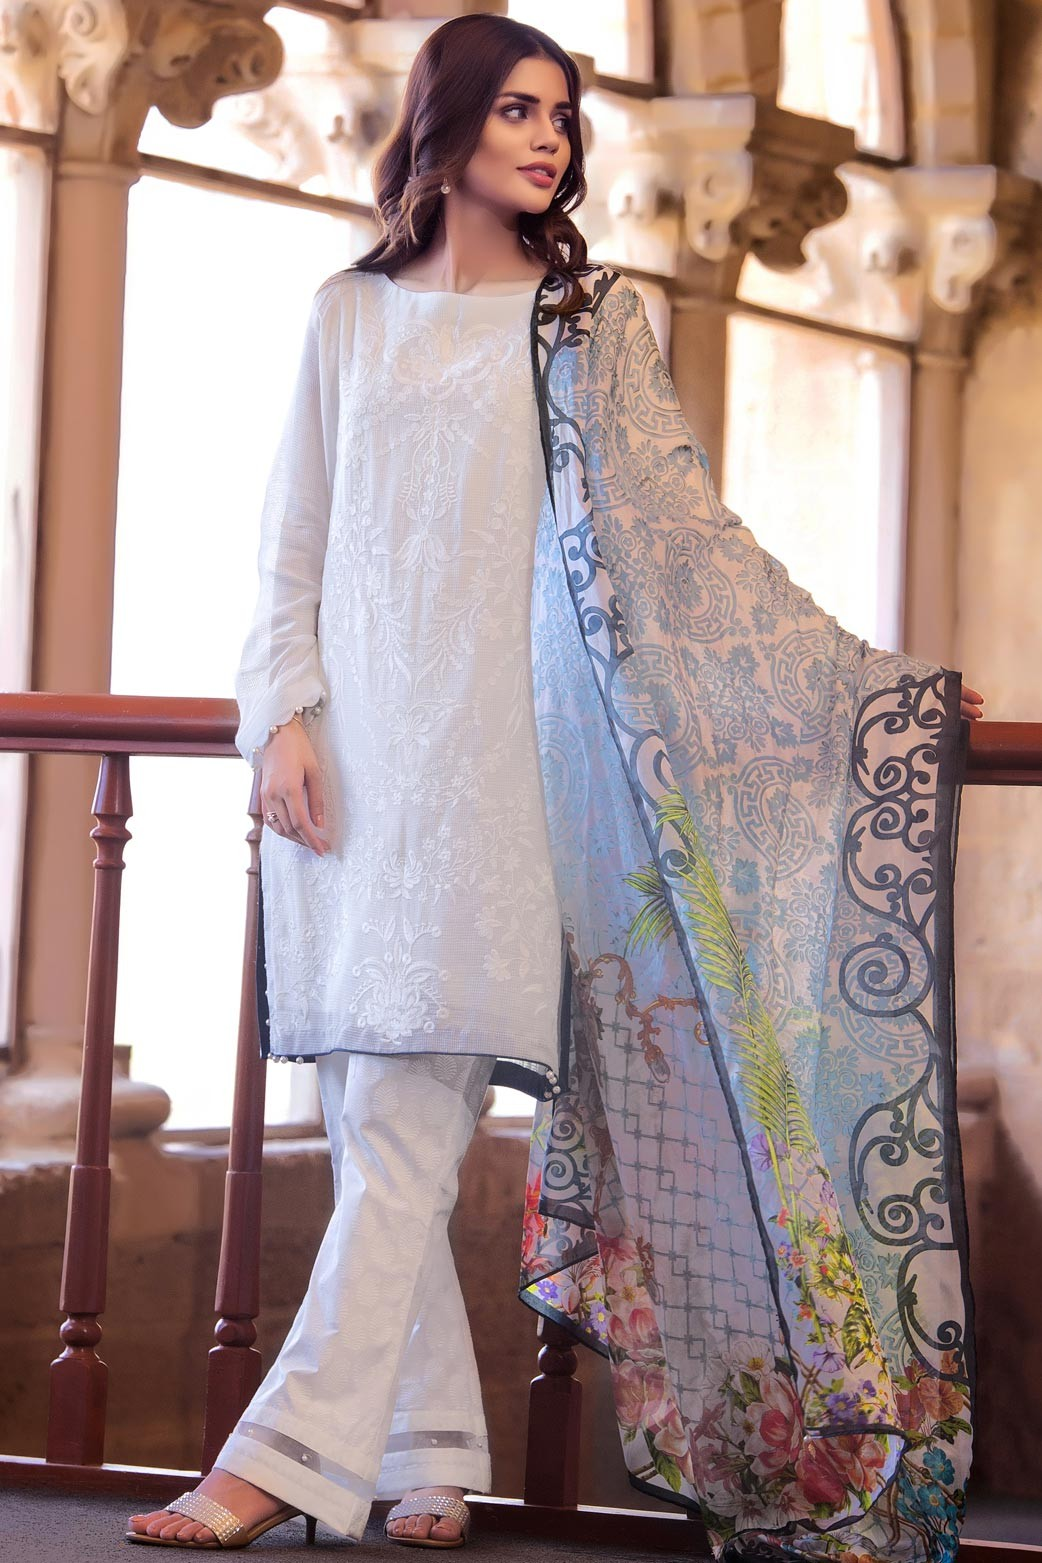 012235ade5 Unstitched Pakistani Suits - Page 4 of 16 - Online Shopping in Pakistan